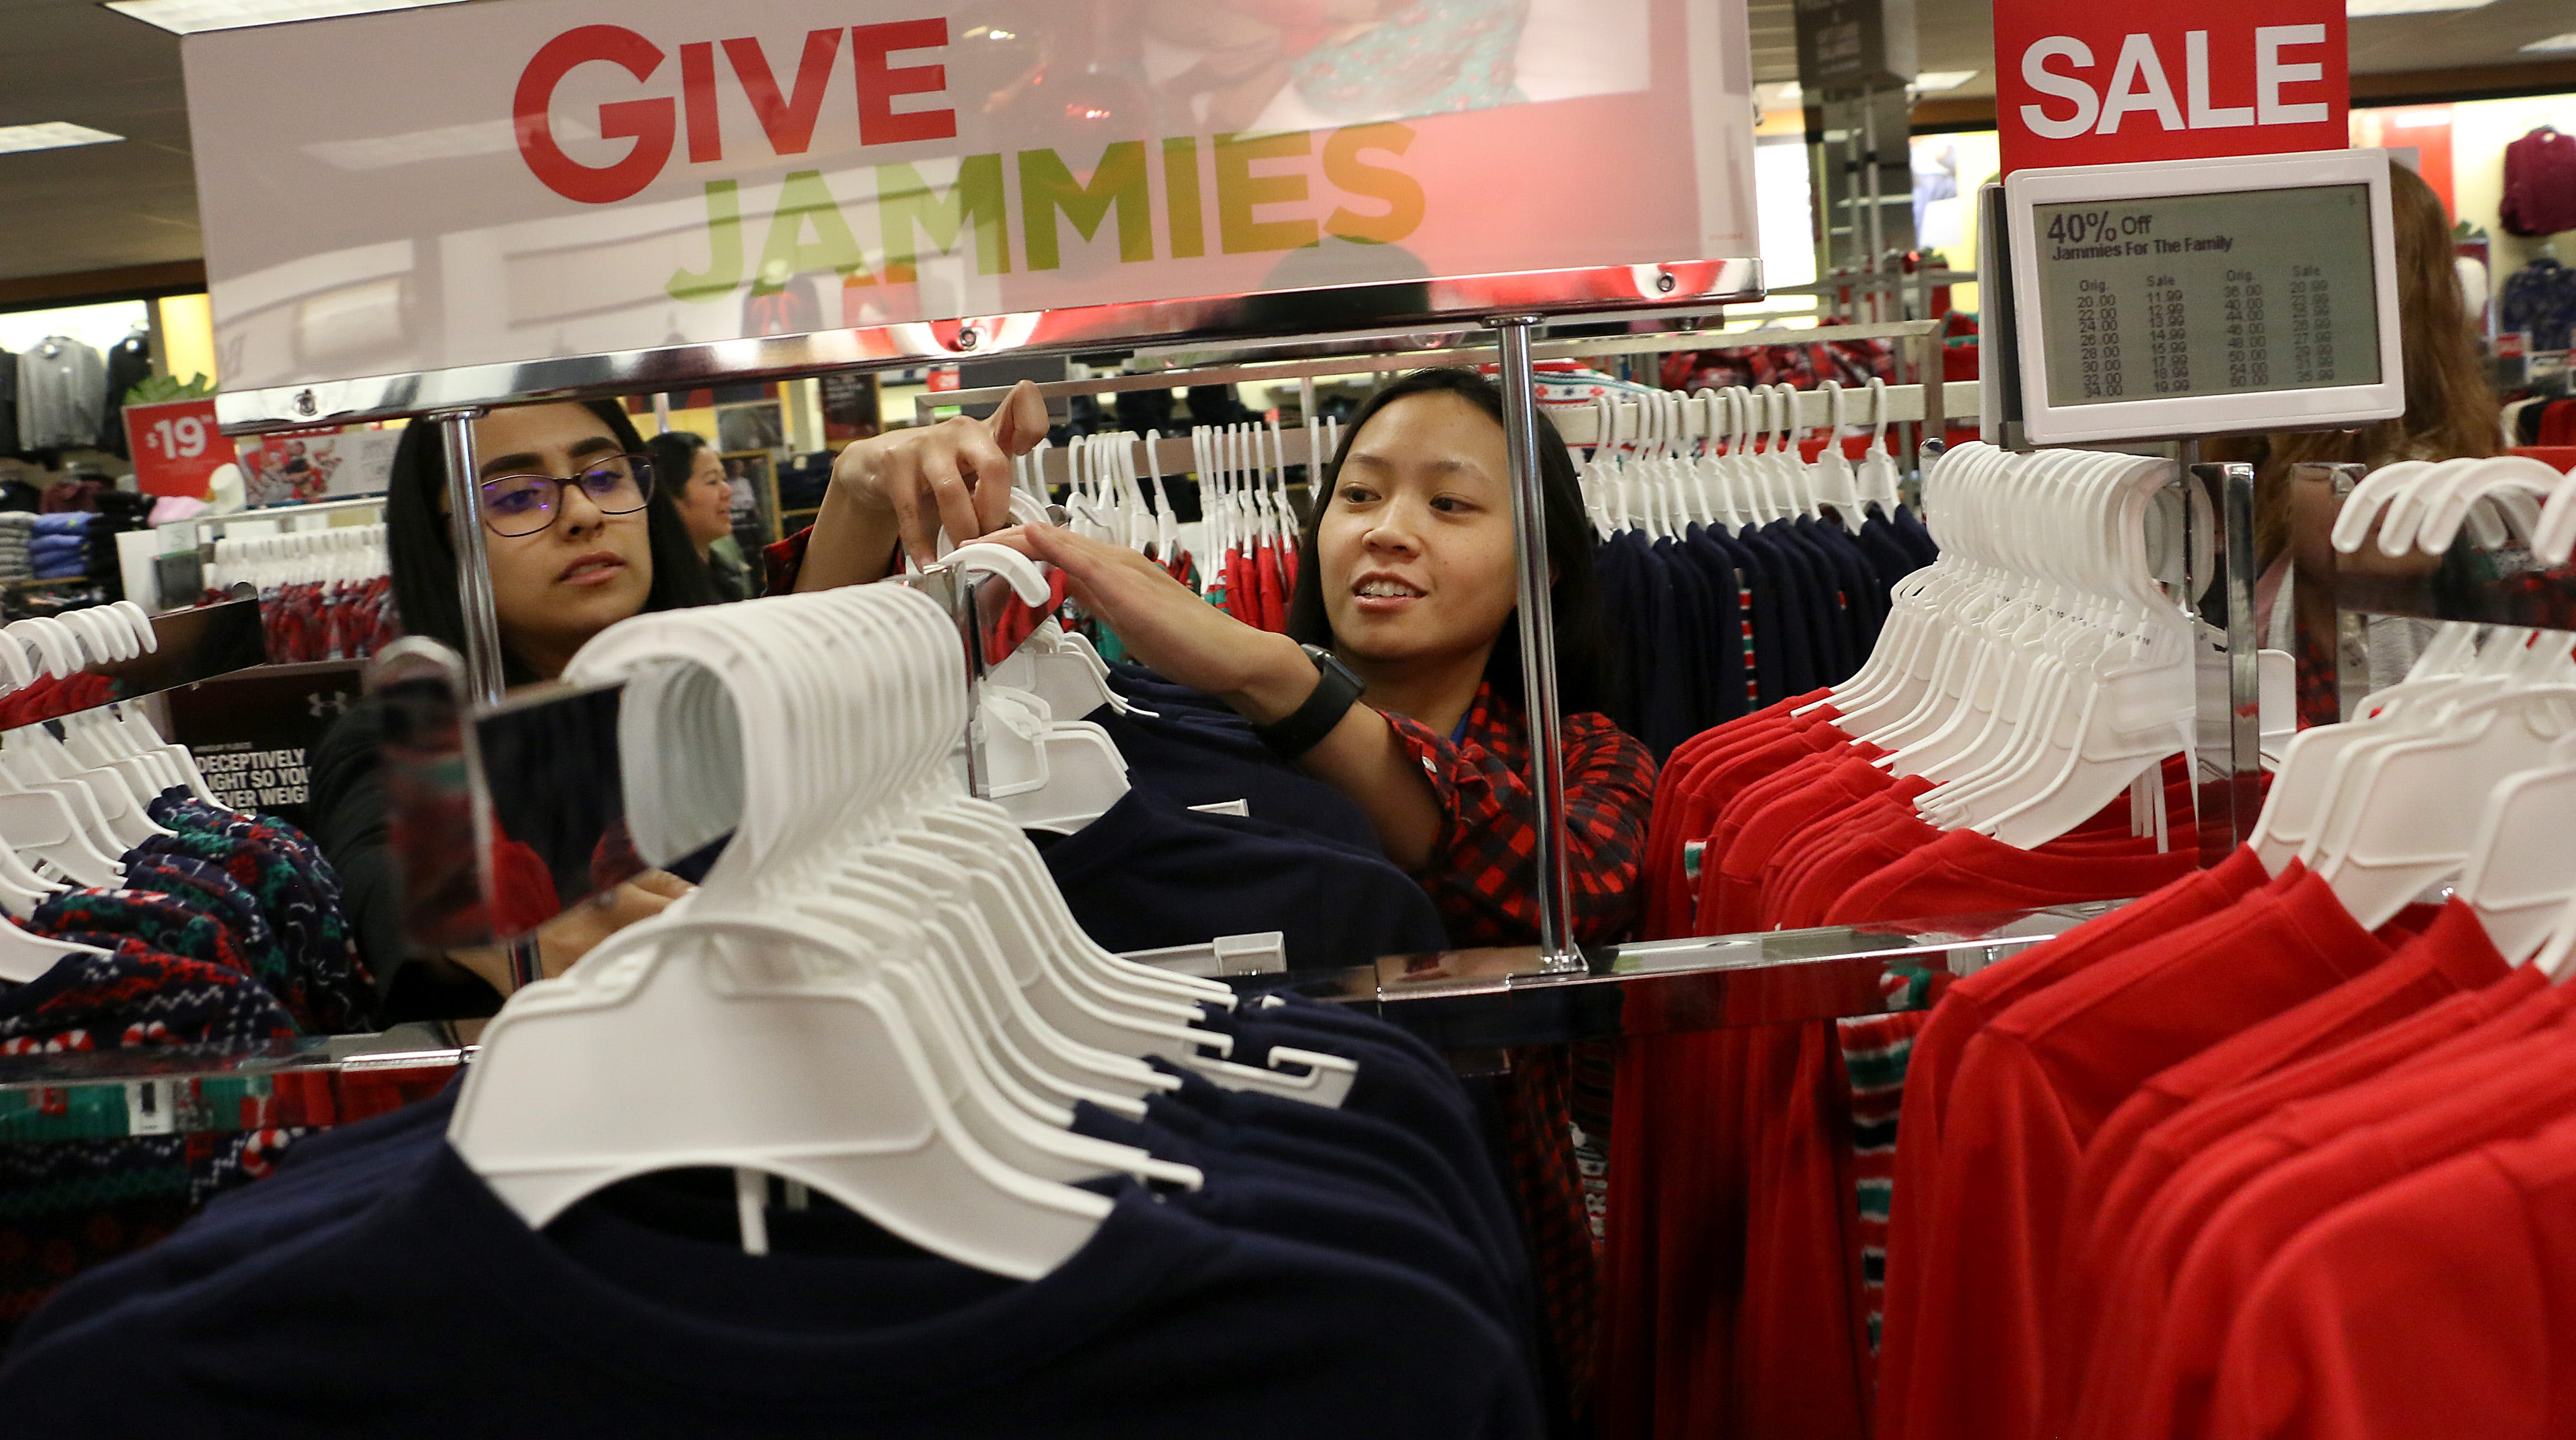 From right, employees Melanie Cabanilla and Emelyn Carias arrange some pajamas while getting ready for Black Friday sales at Kohl's in Spanish Springs on Nov. 15, 2018.